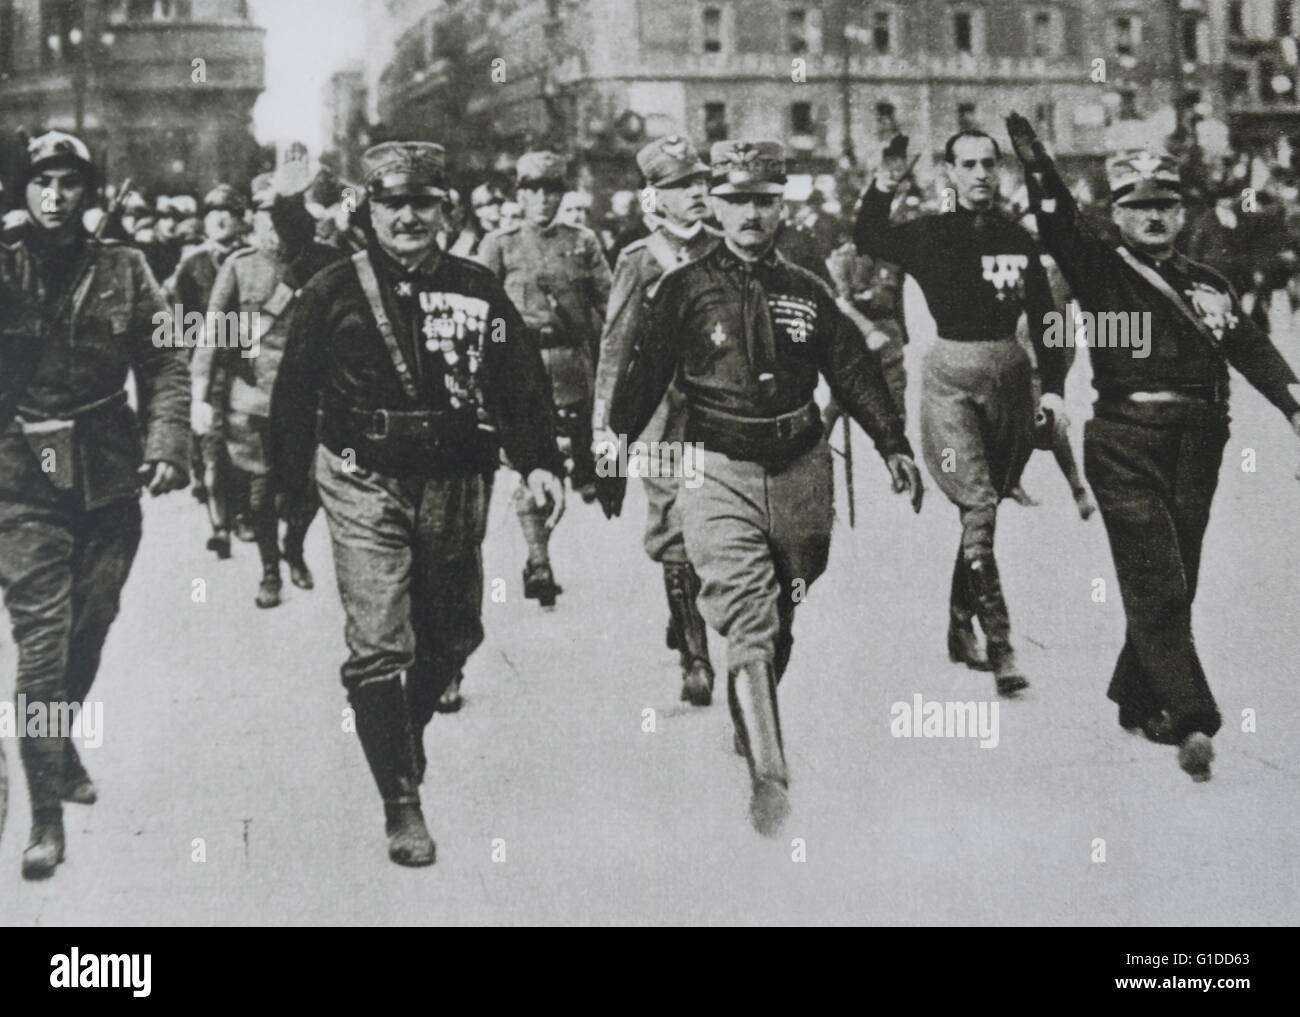 Photographic print of Mussolini's Black shirts march through the ...